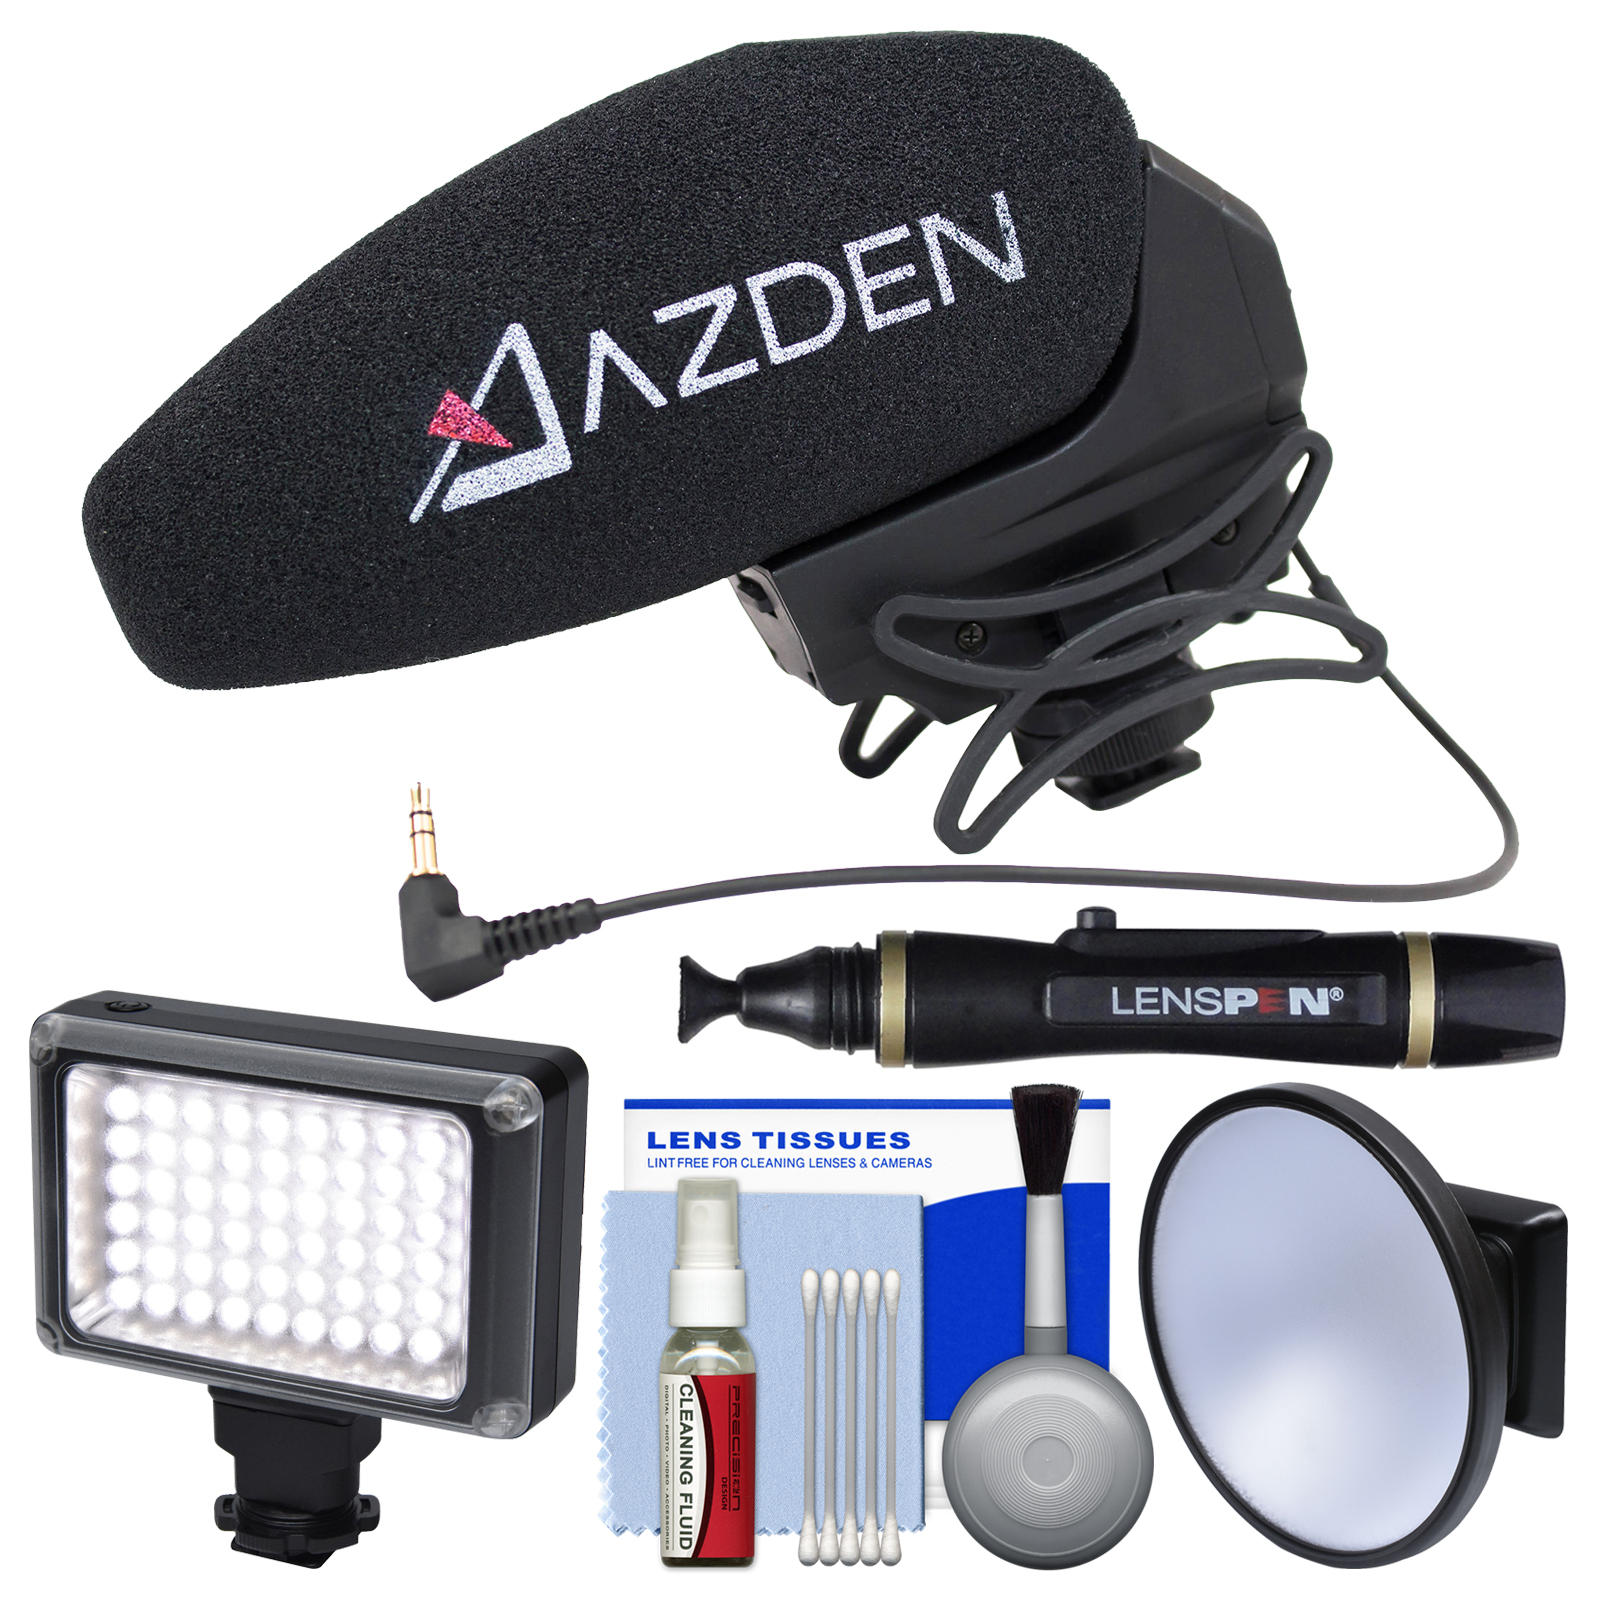 Azden SMX-30 Stereo / Mono Switchable Video Microphone with LED Video Light + Diffuser + Kit